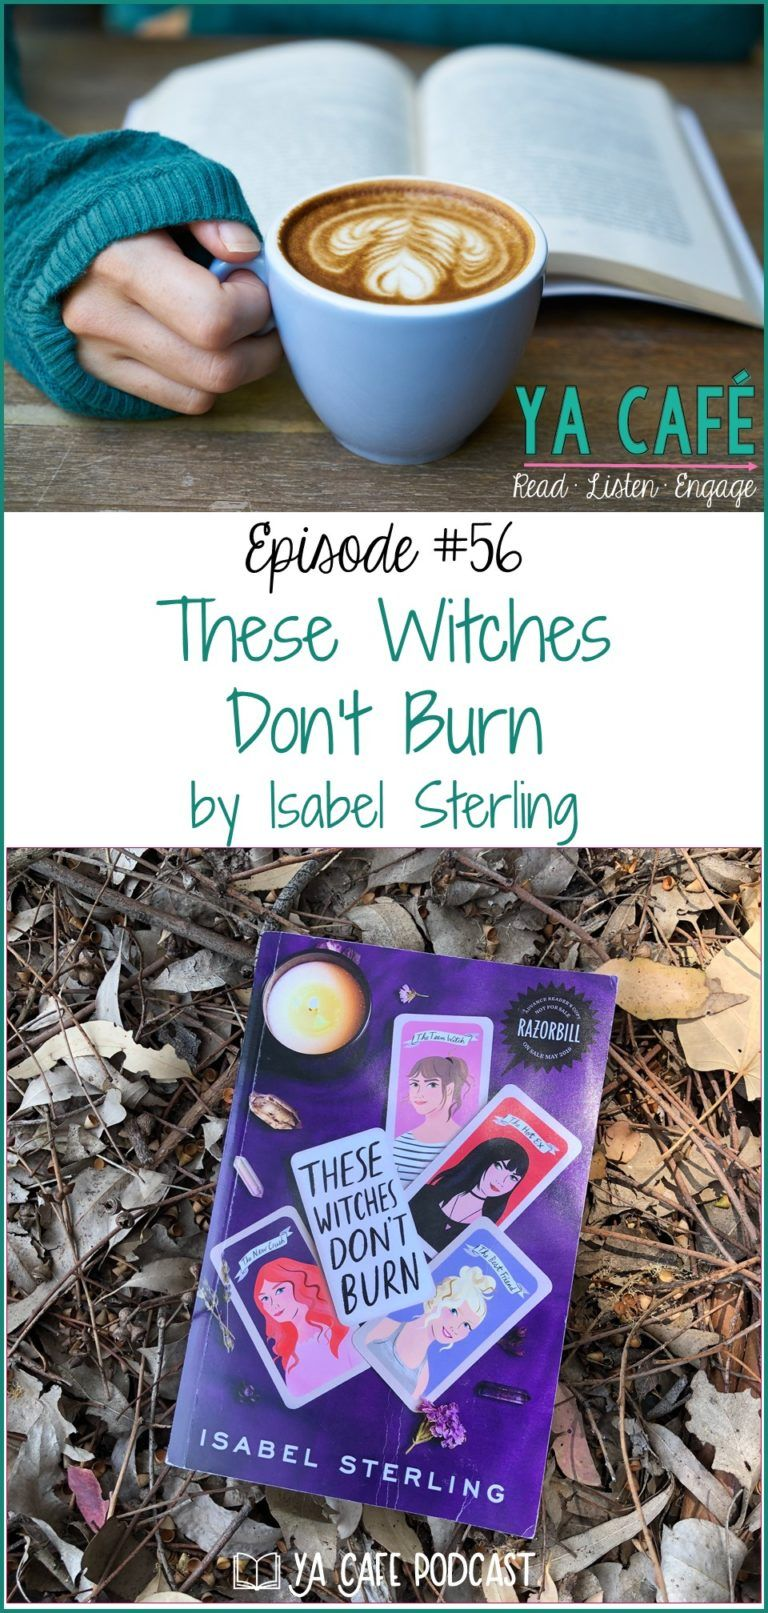 YA Cafe Podcast: These Witches Don't Burn by Isabel Sterling